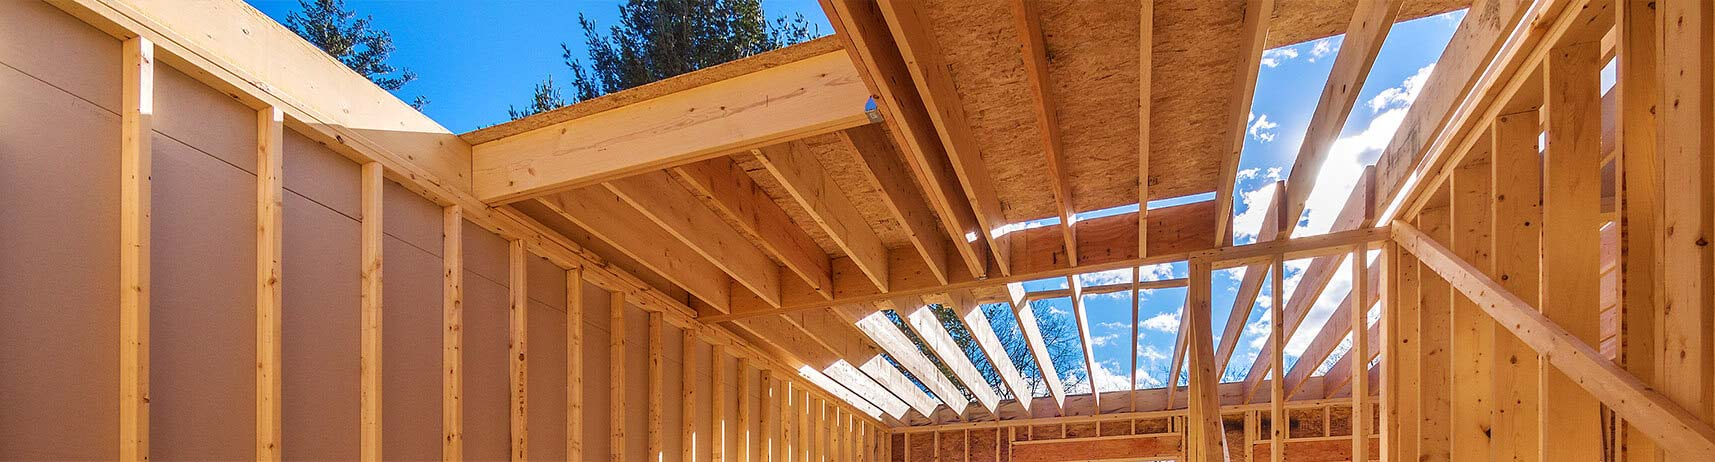 Sudbury Home Builder, Remodeling Contractor and Home Additions